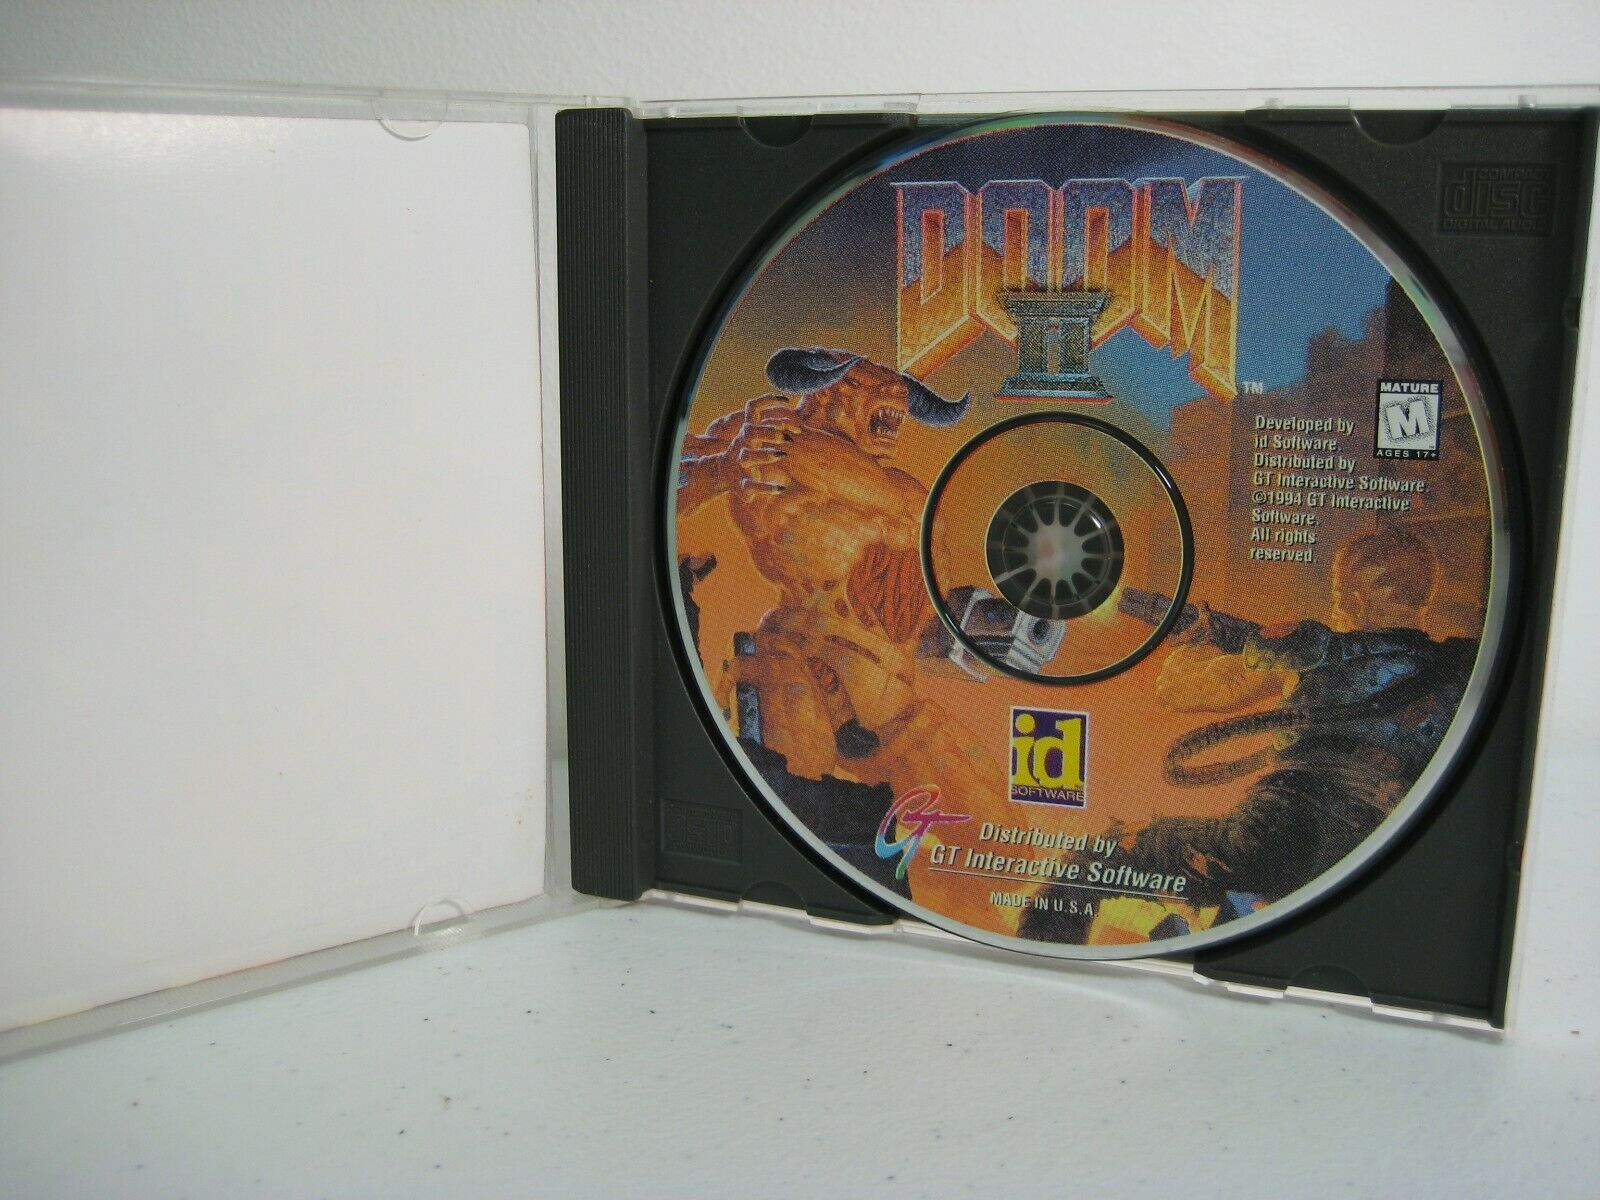 Doom II - Hell On Earth 1994 PC CD Game image 3